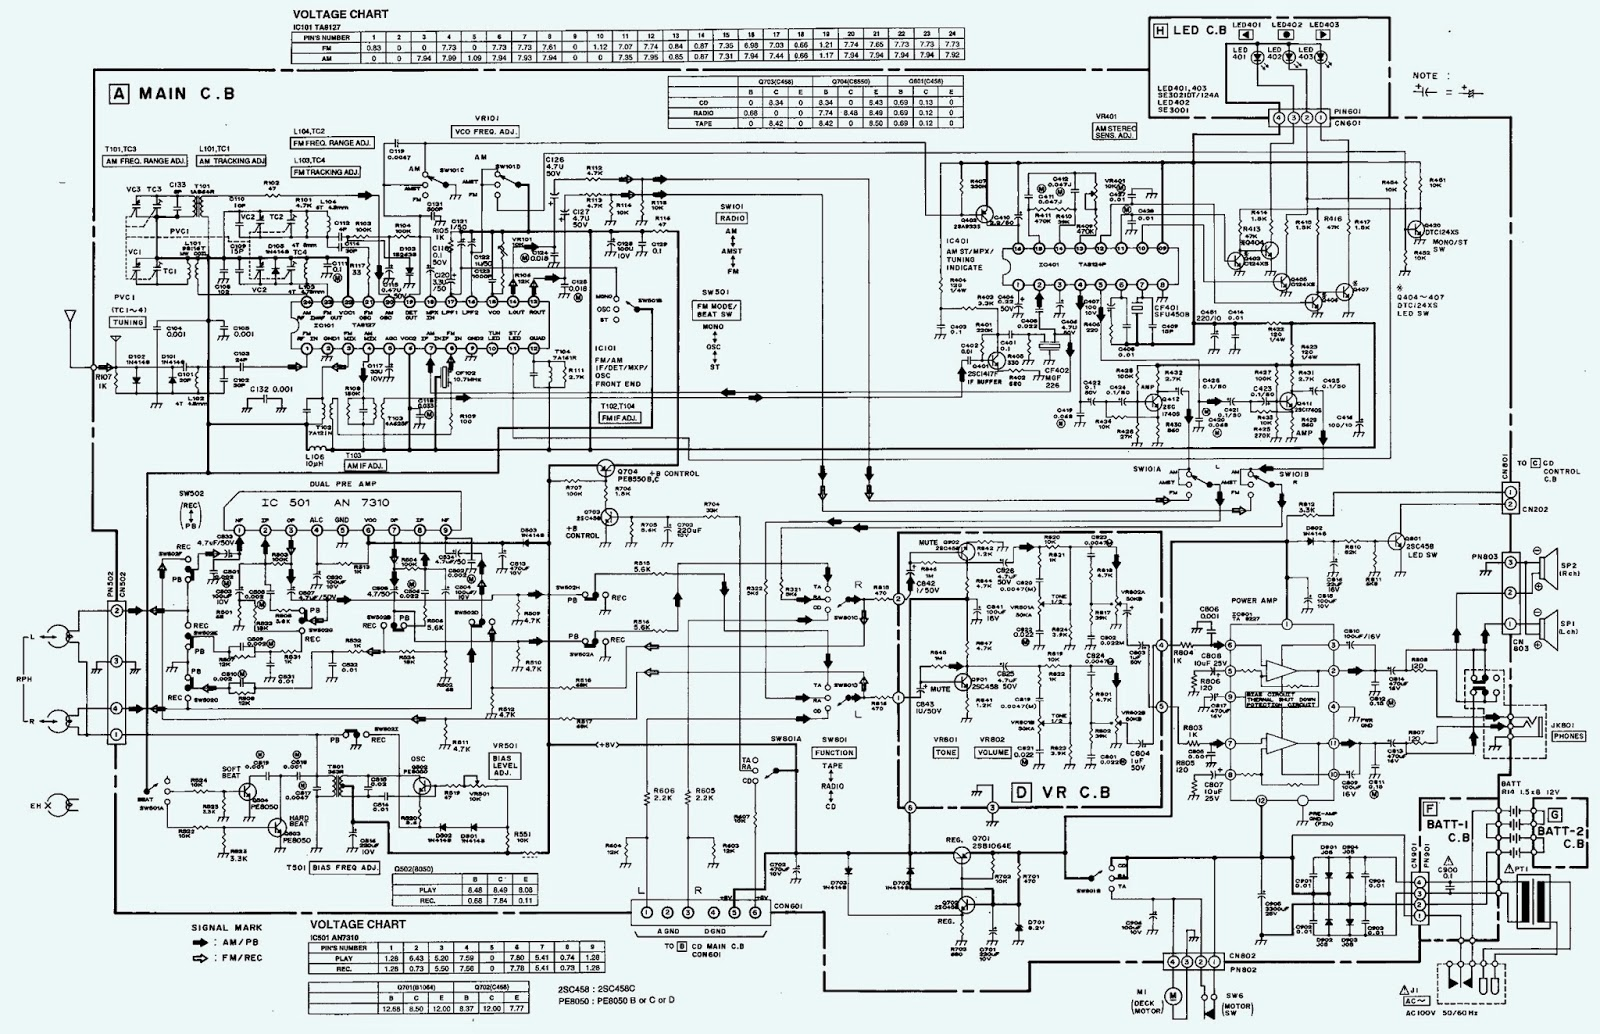 2.bmp aiwa csd ex110 schematic (circuit diagram) electro help aiwa cdc-x144 wiring diagram at bayanpartner.co